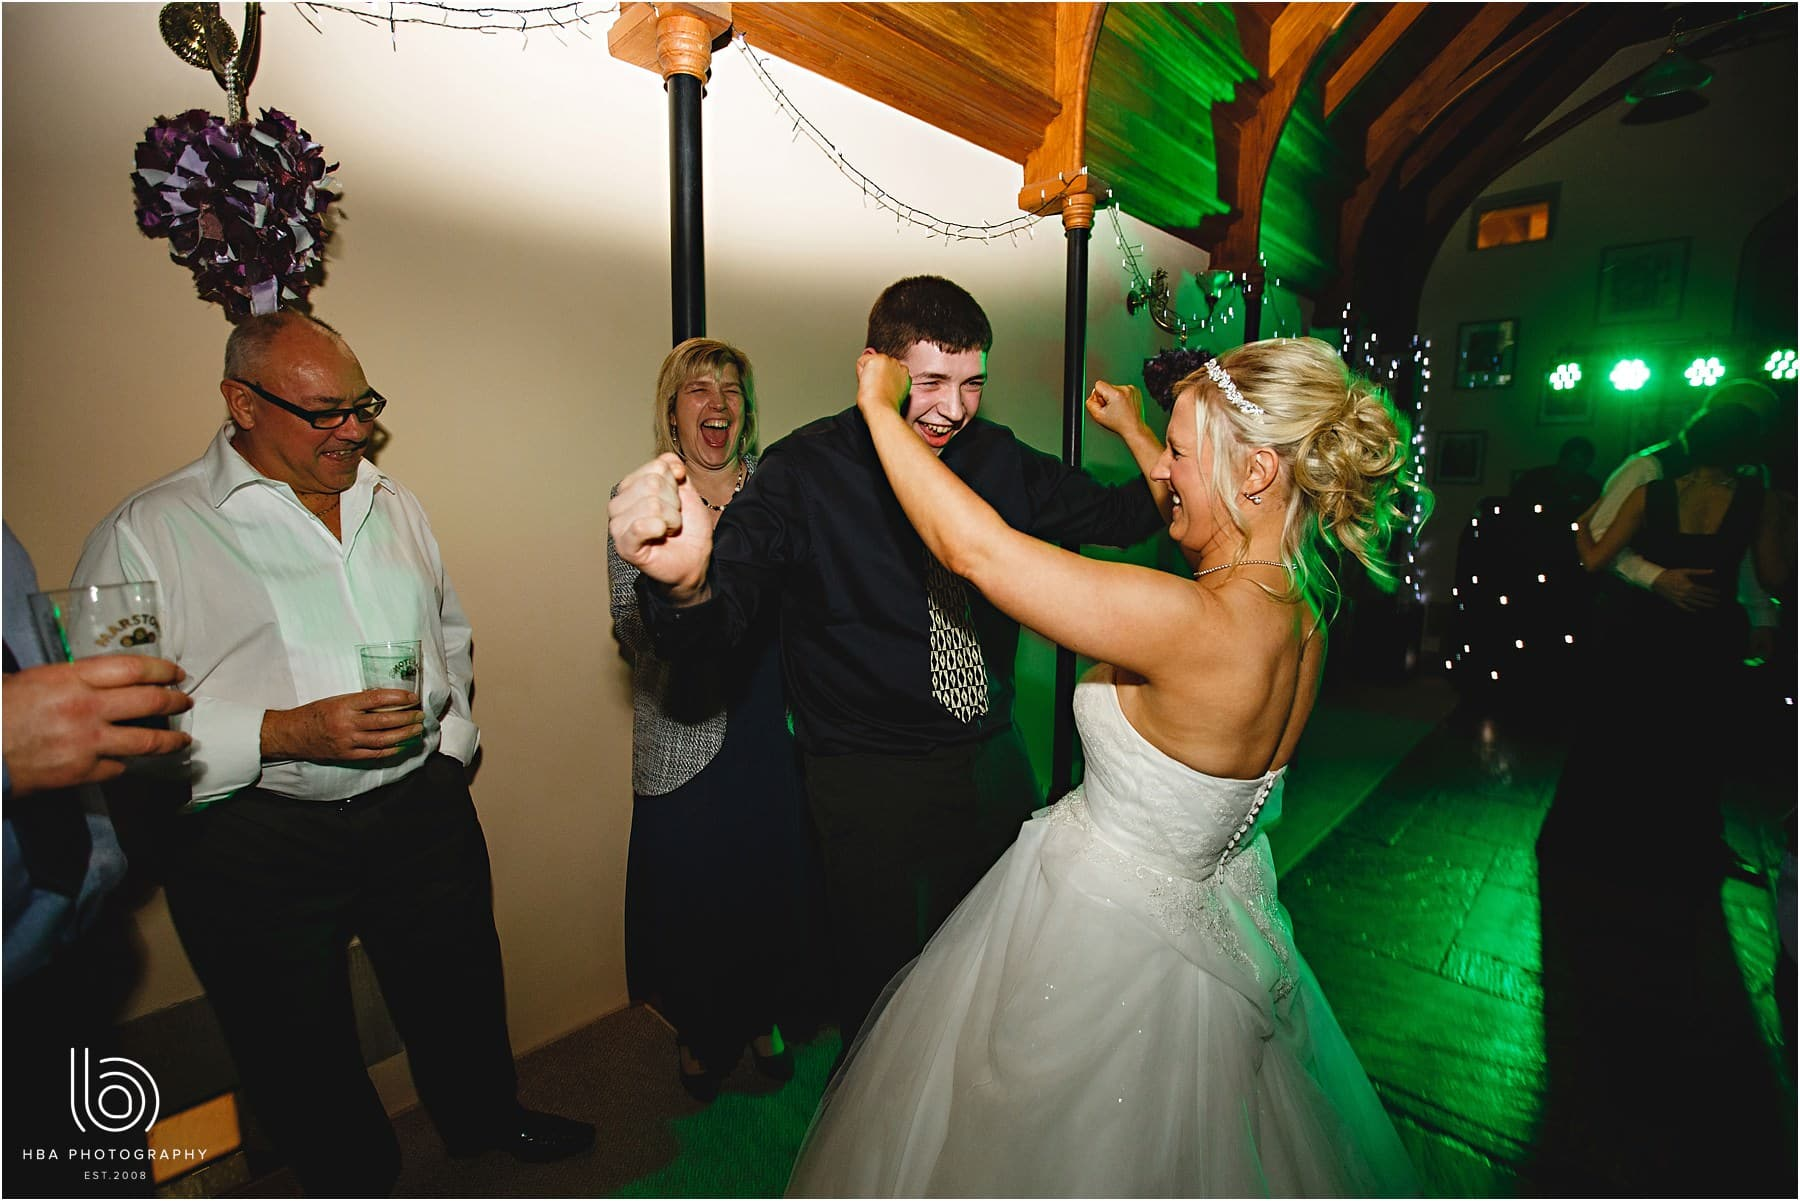 The bride dancing with wedding guests